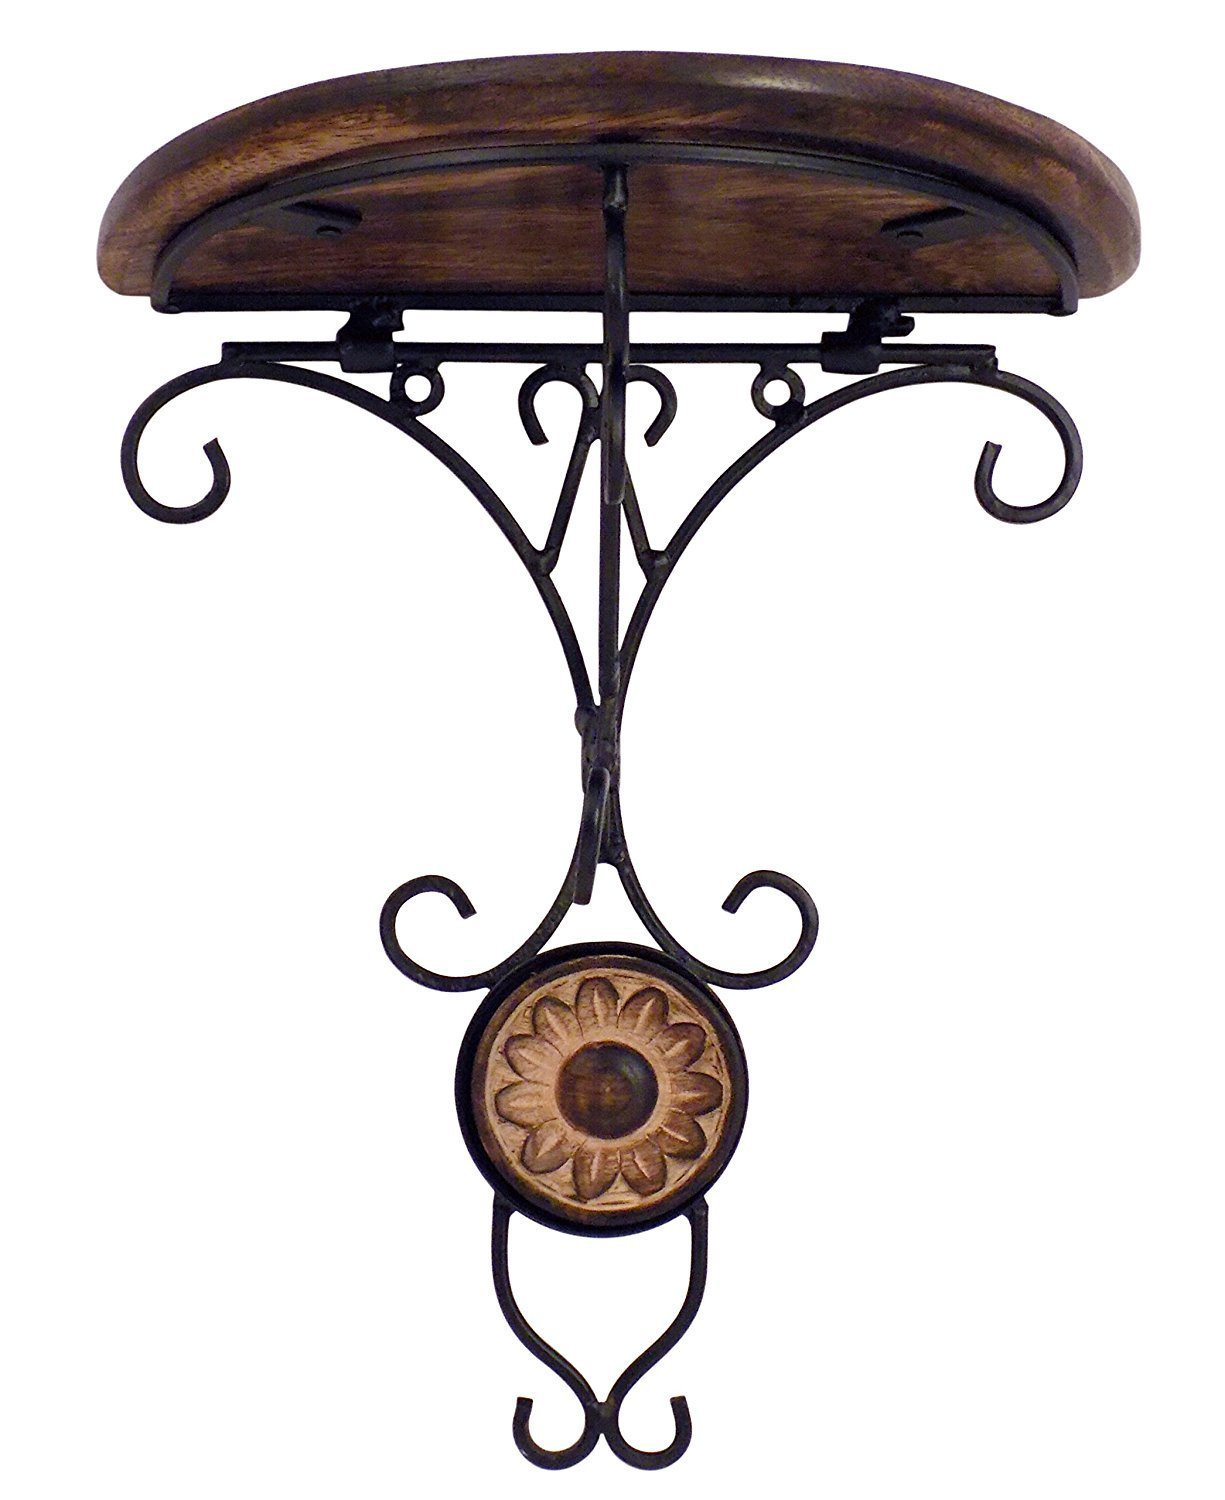 PMK Wood Handmade Wall Mounted Wall Bracket, Wall Hanger for Clothes Flower Carvings and Telephone Stand, Decorative Item for Home & Office, 9 x 8 Inch